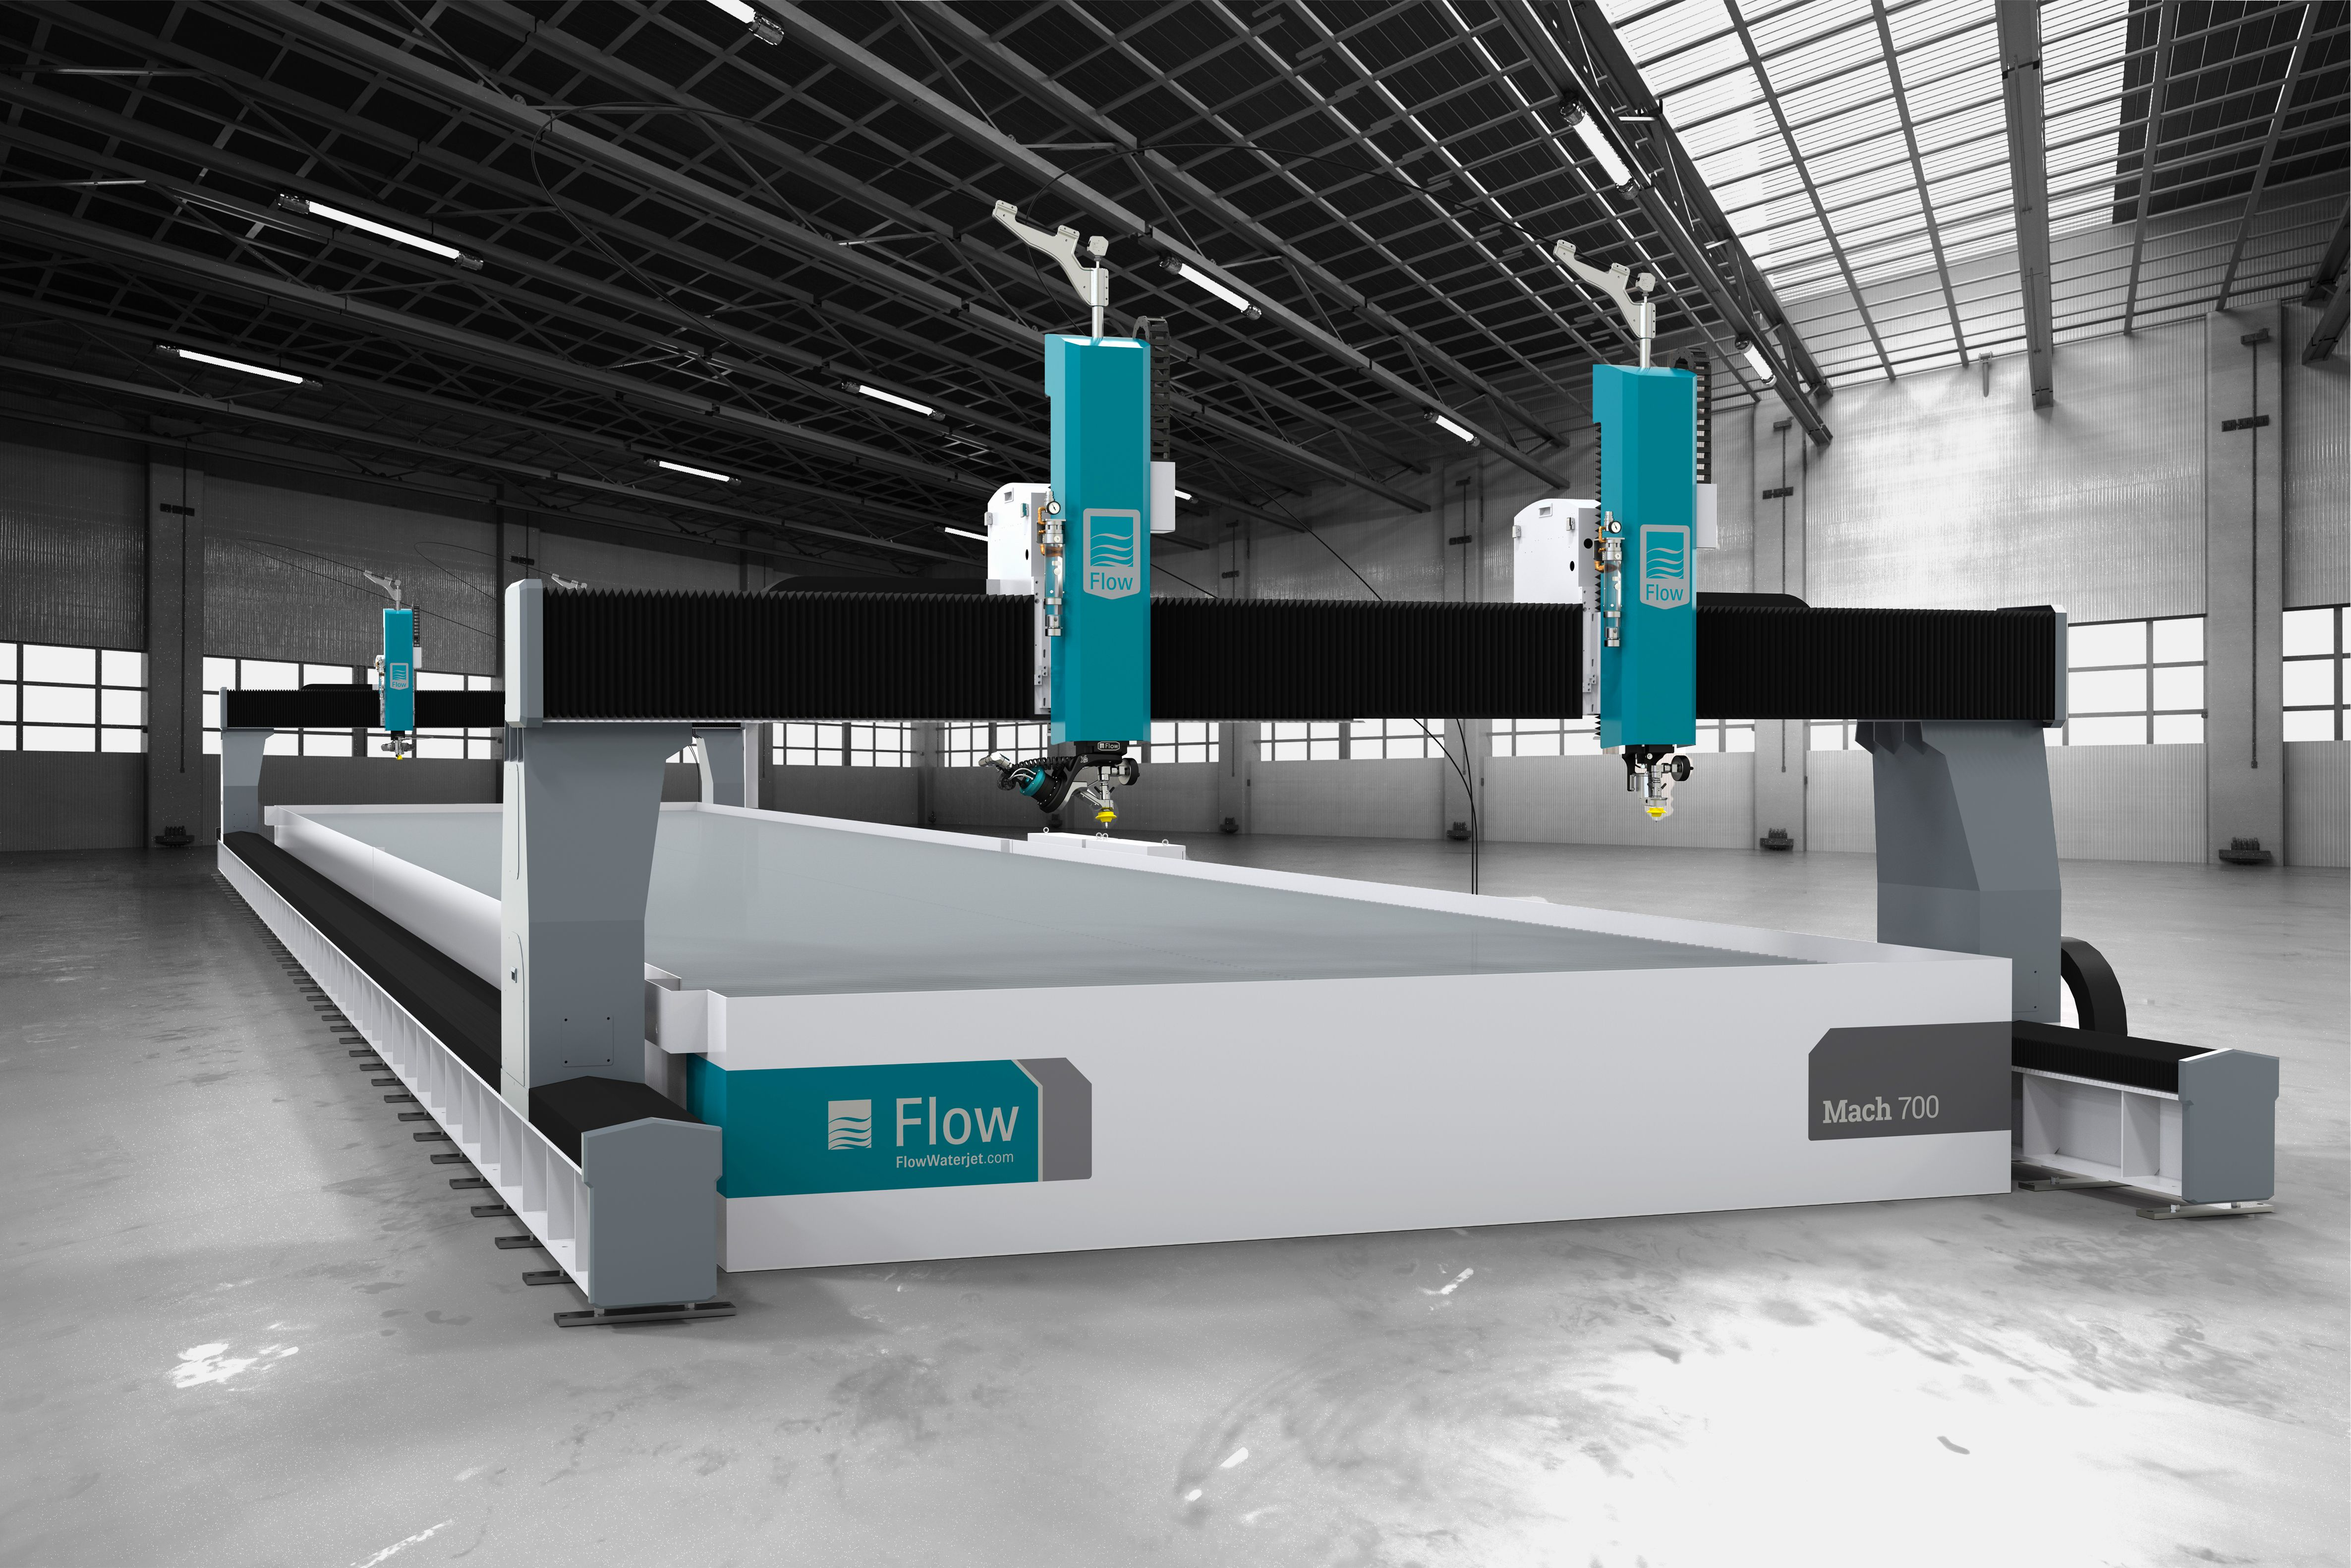 PWJ Appointed Australian Distributor For Flow Waterjet